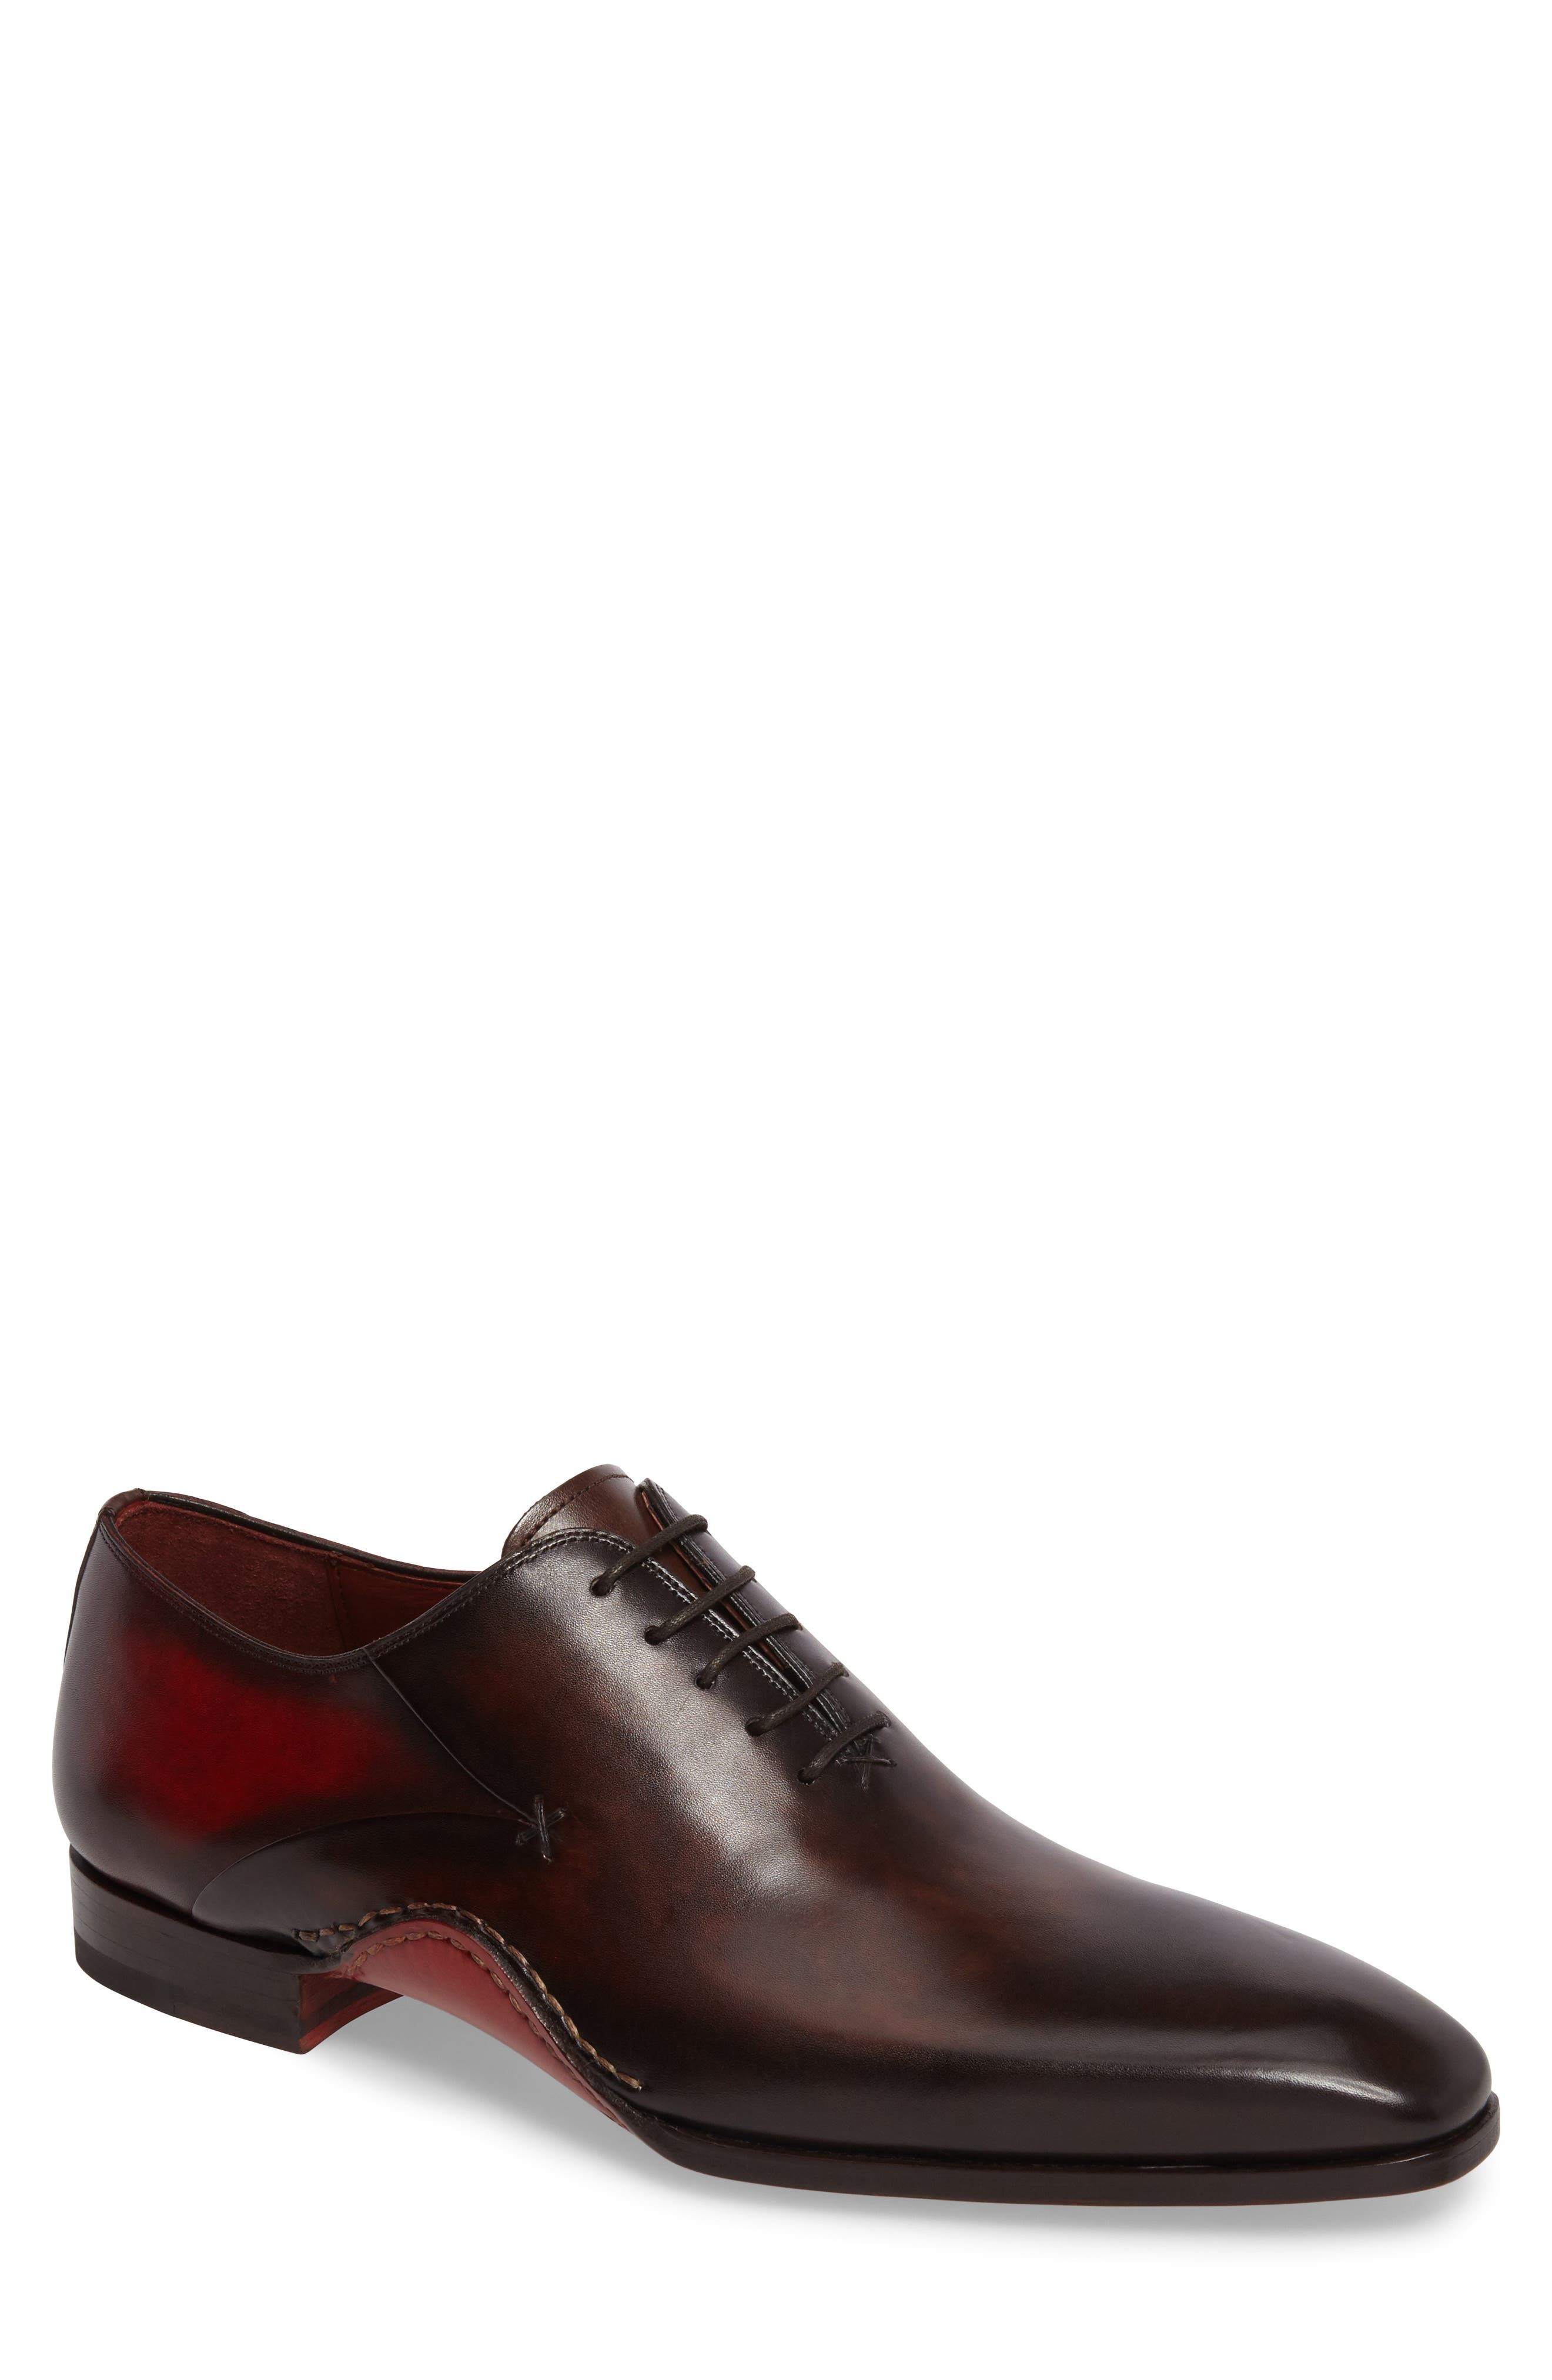 MAGNANNI, Cantabria Plain Toe Oxford, Main thumbnail 1, color, BROWN/ RED LEATHER